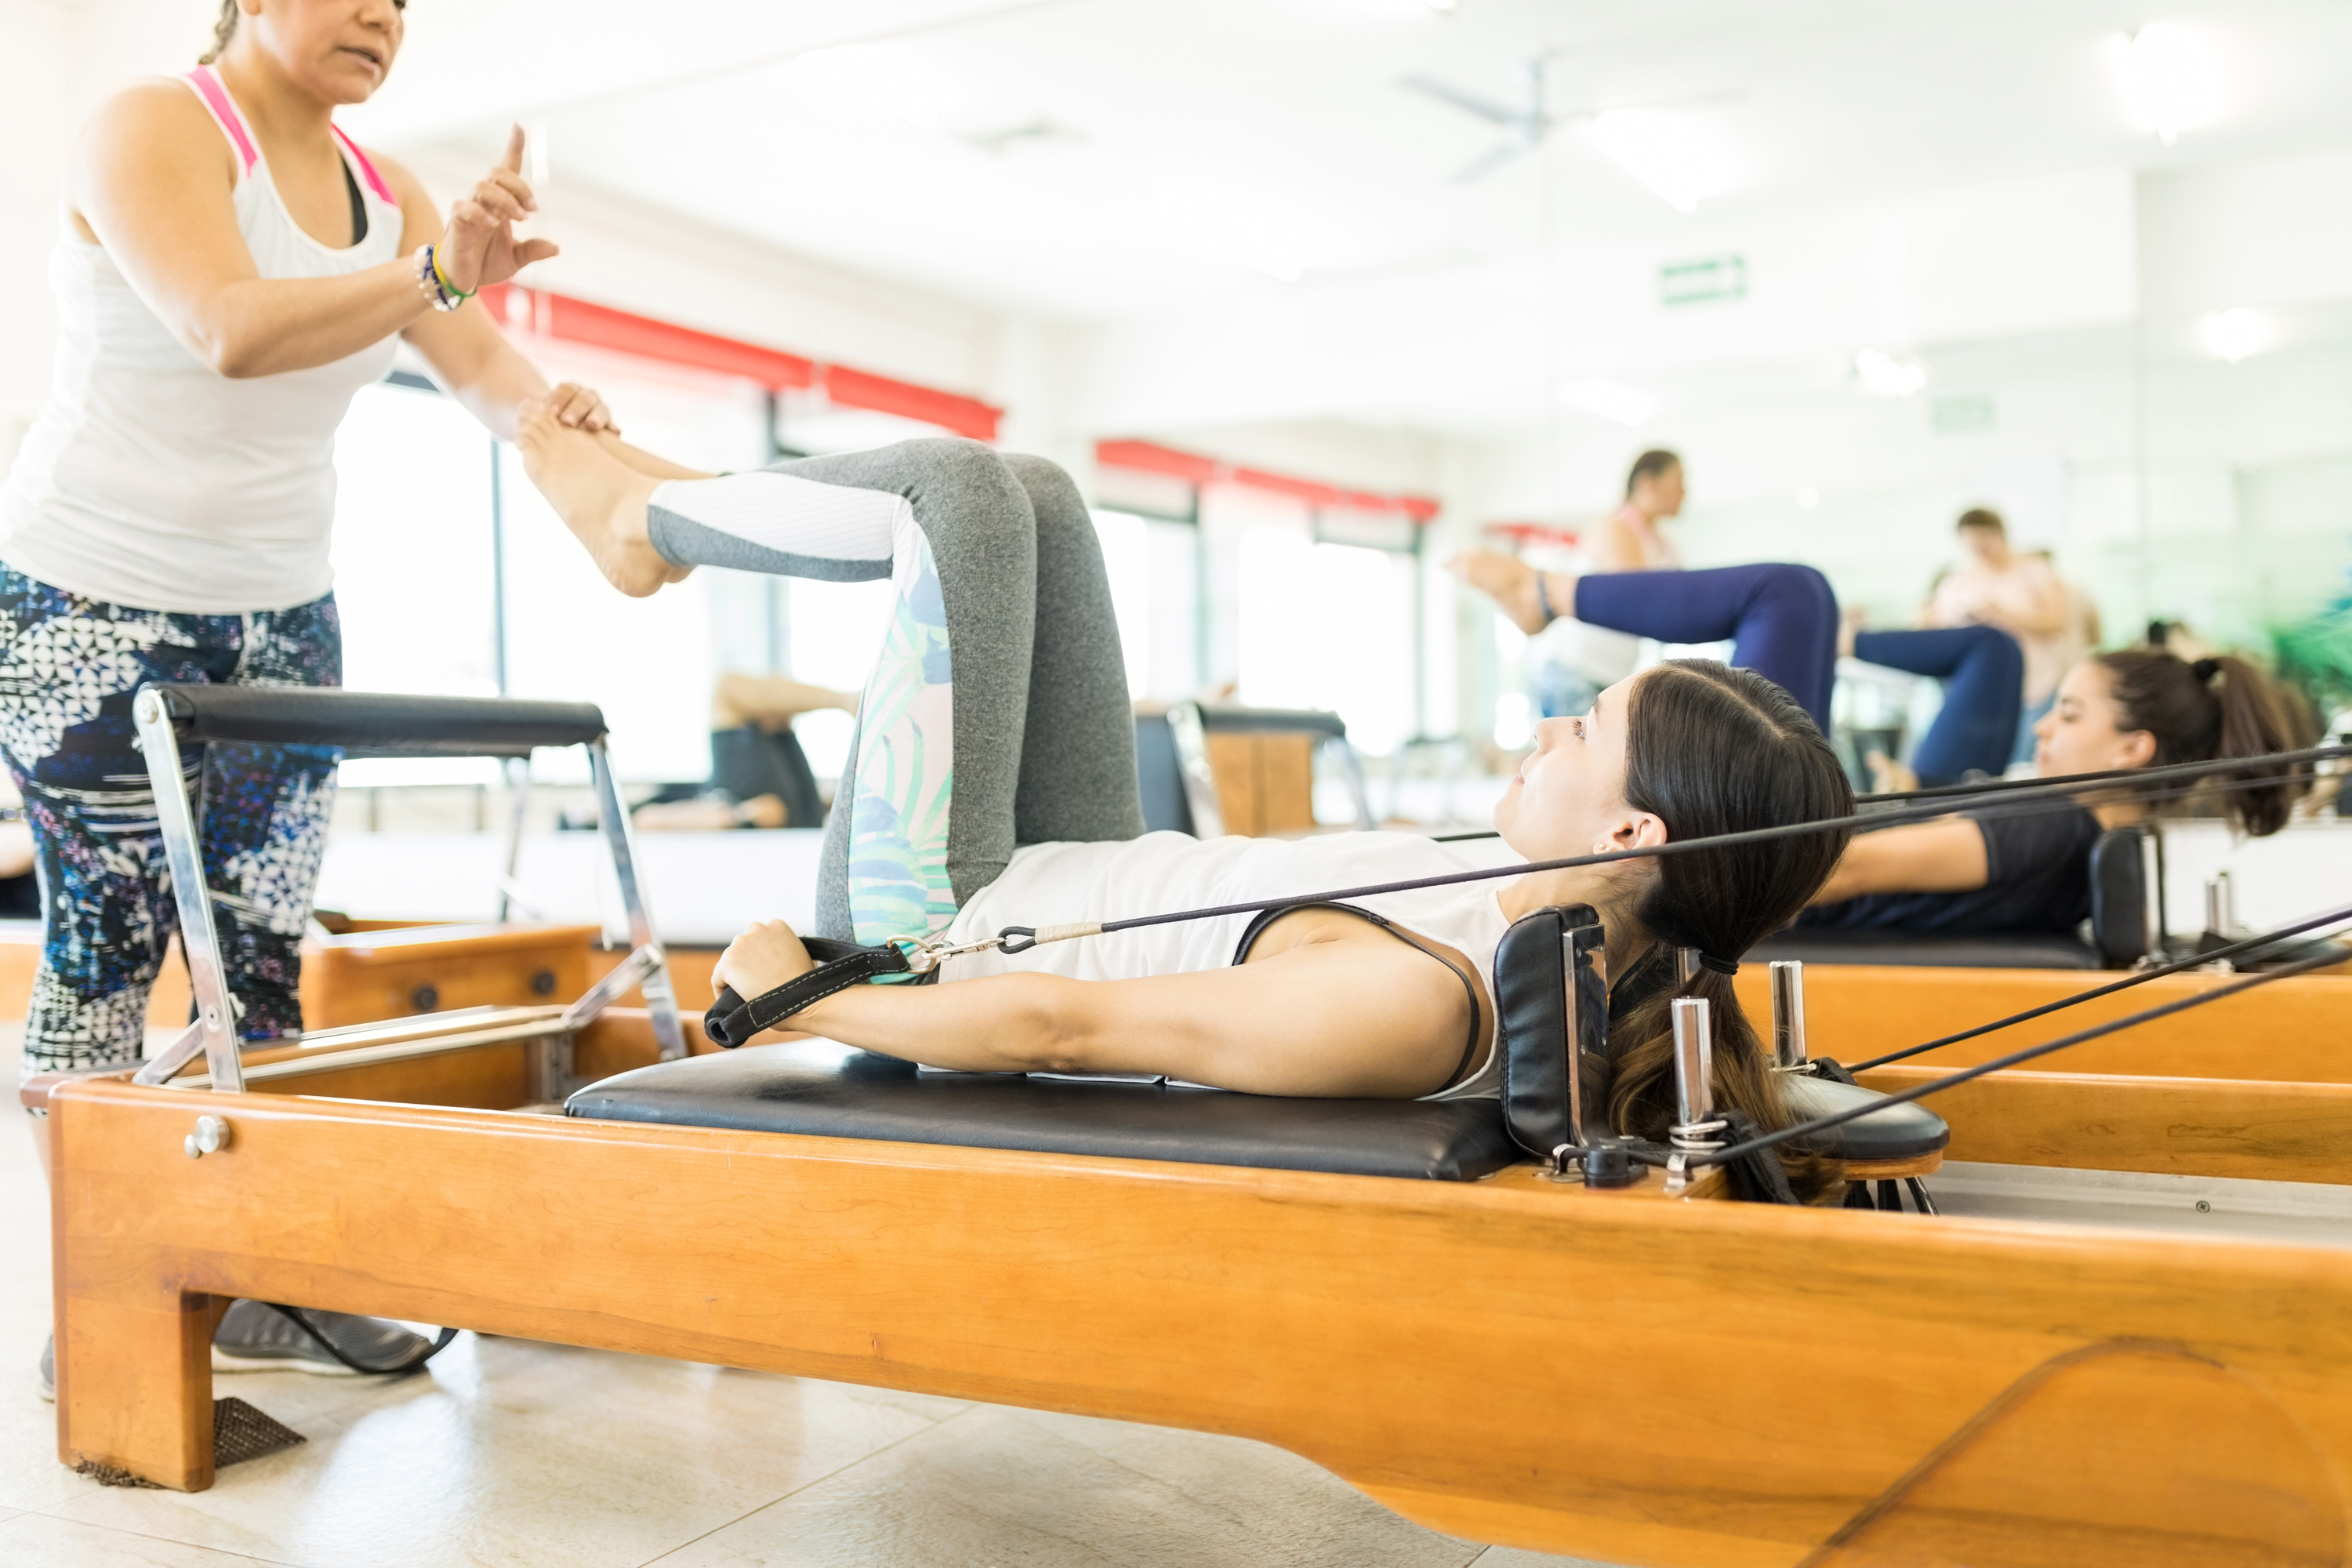 Generic stock image of a pilates instructor showing a woman how to use a reformer machine. See PA Feature WELLBEING Reformer. Picture credit should read: iStock/PA. WARNING: This picture must only be used to accompany PA Feature WELLBEING Reformer.